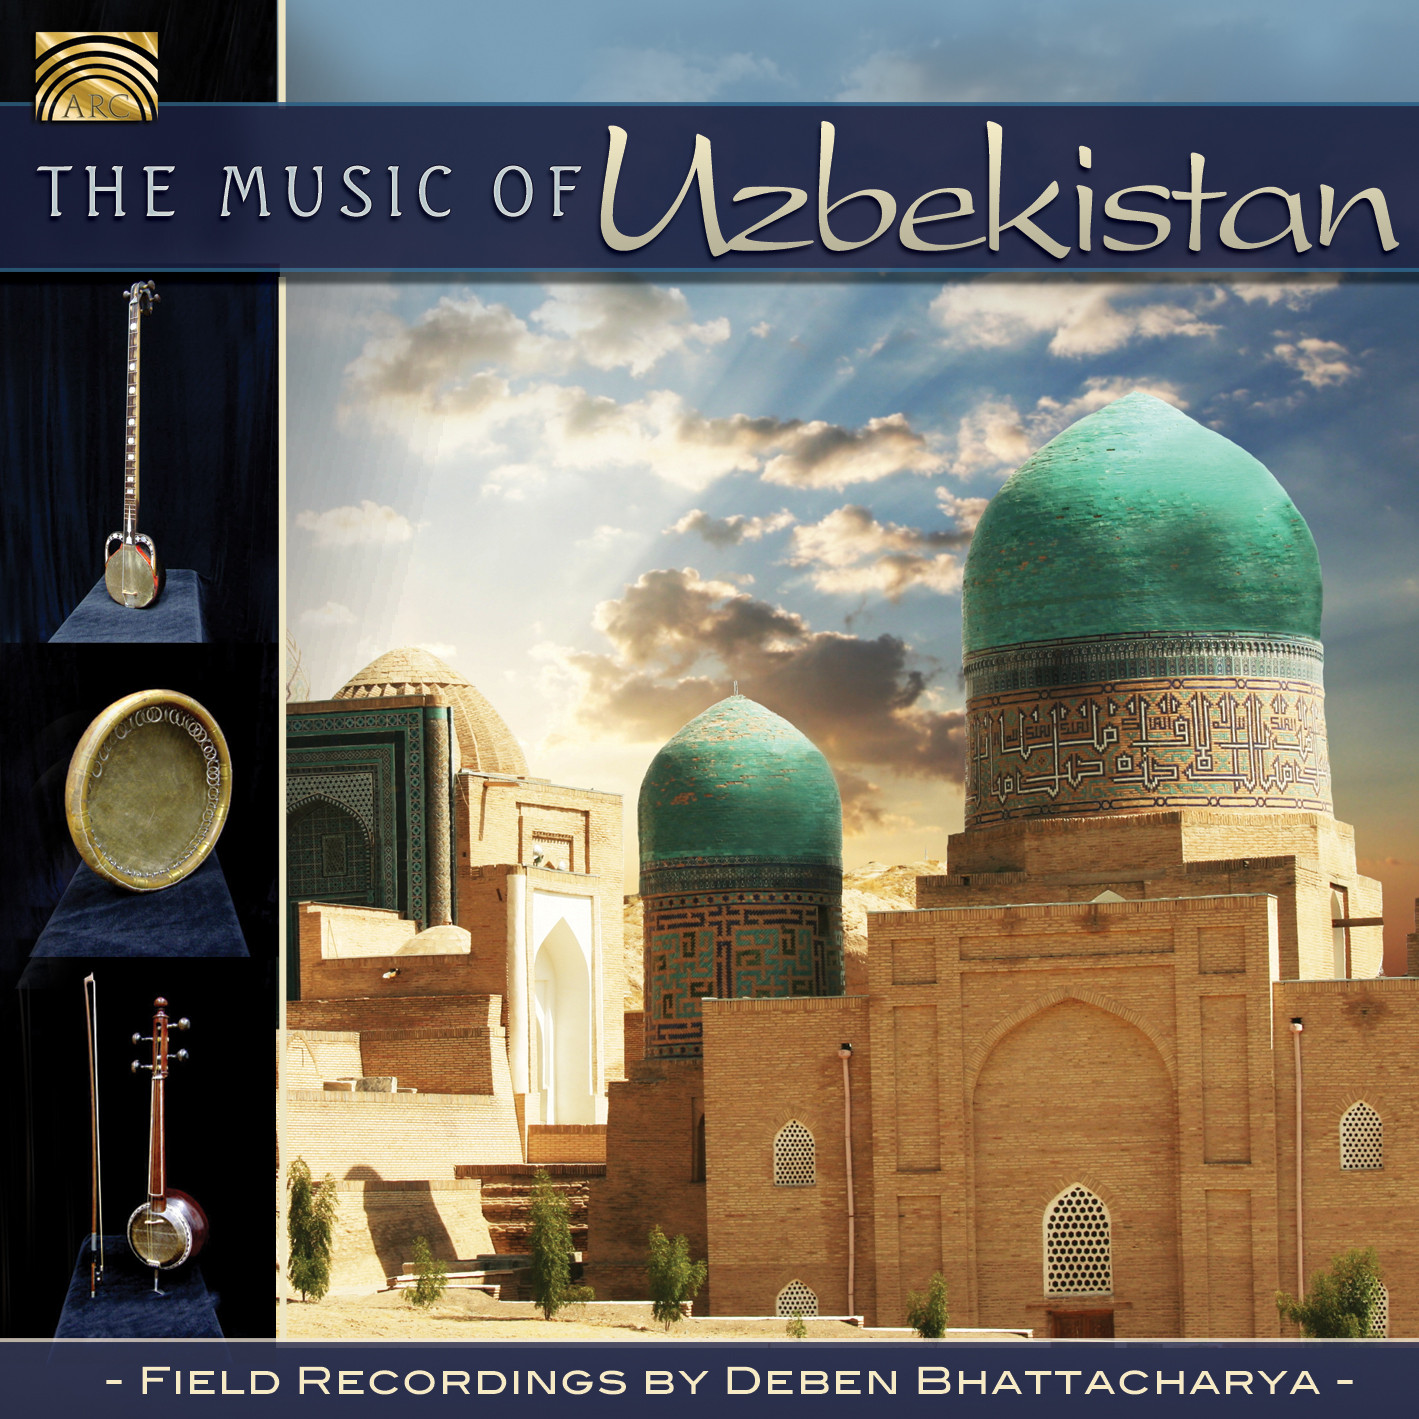 EUCD2438 The Music of Uzbekistan - Field Recordings by Deben Bhattacharya